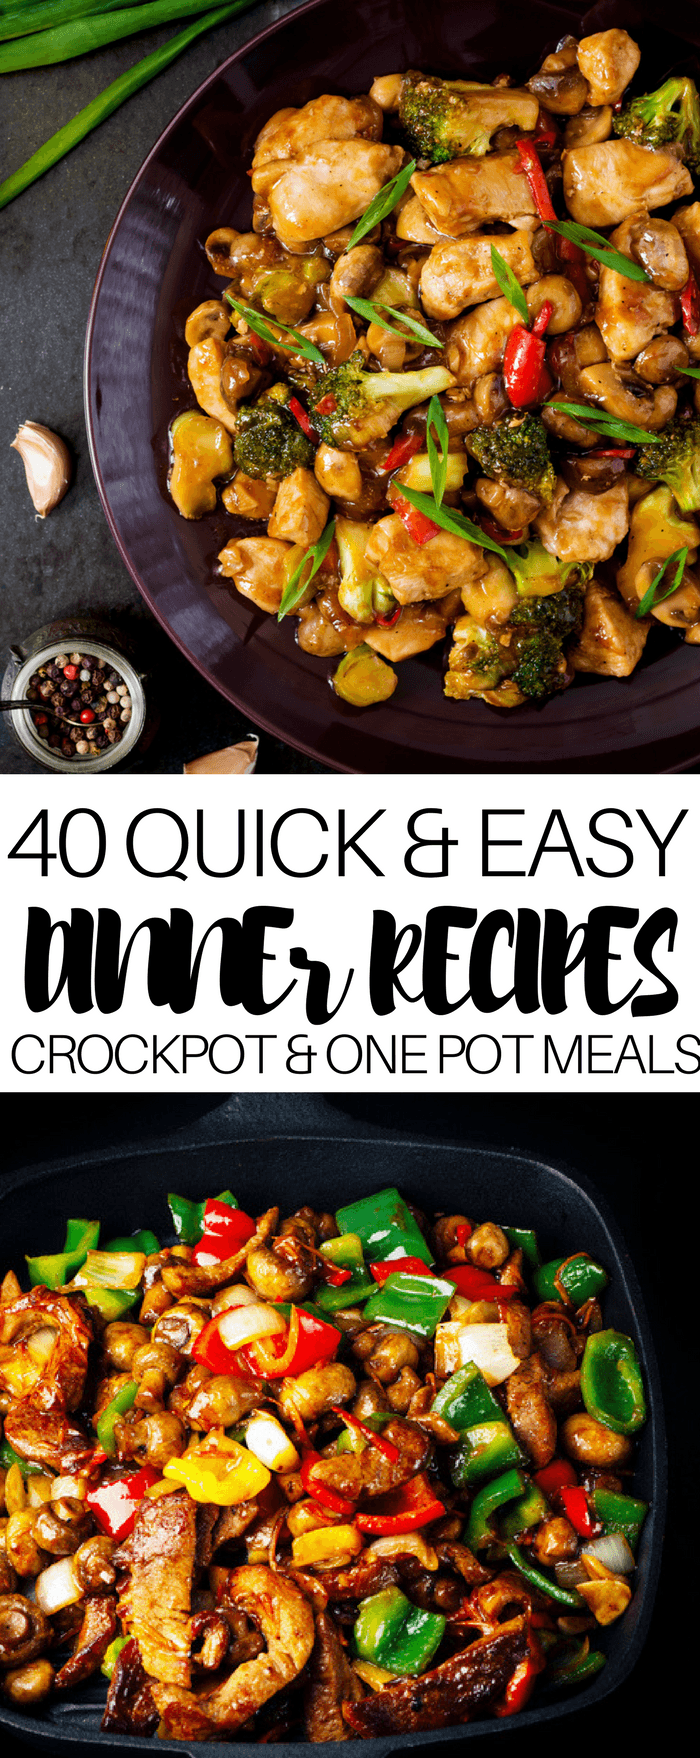 40 Quick & Easy Dinner Recipes Are you looking for easy main dishes to serve for family dinner? Check out this awesome collection of 40 dinner recipes! They're perfect for weeknight family dinner! Whether you're looking for healthy crockpot recipes or fast and cheap one-pot meals, this list has a recipe for you! From the best instant pot chicken and pasta to healthy pulled pork and yummy Mexican dishes, this is one you need to pin now! #recipes